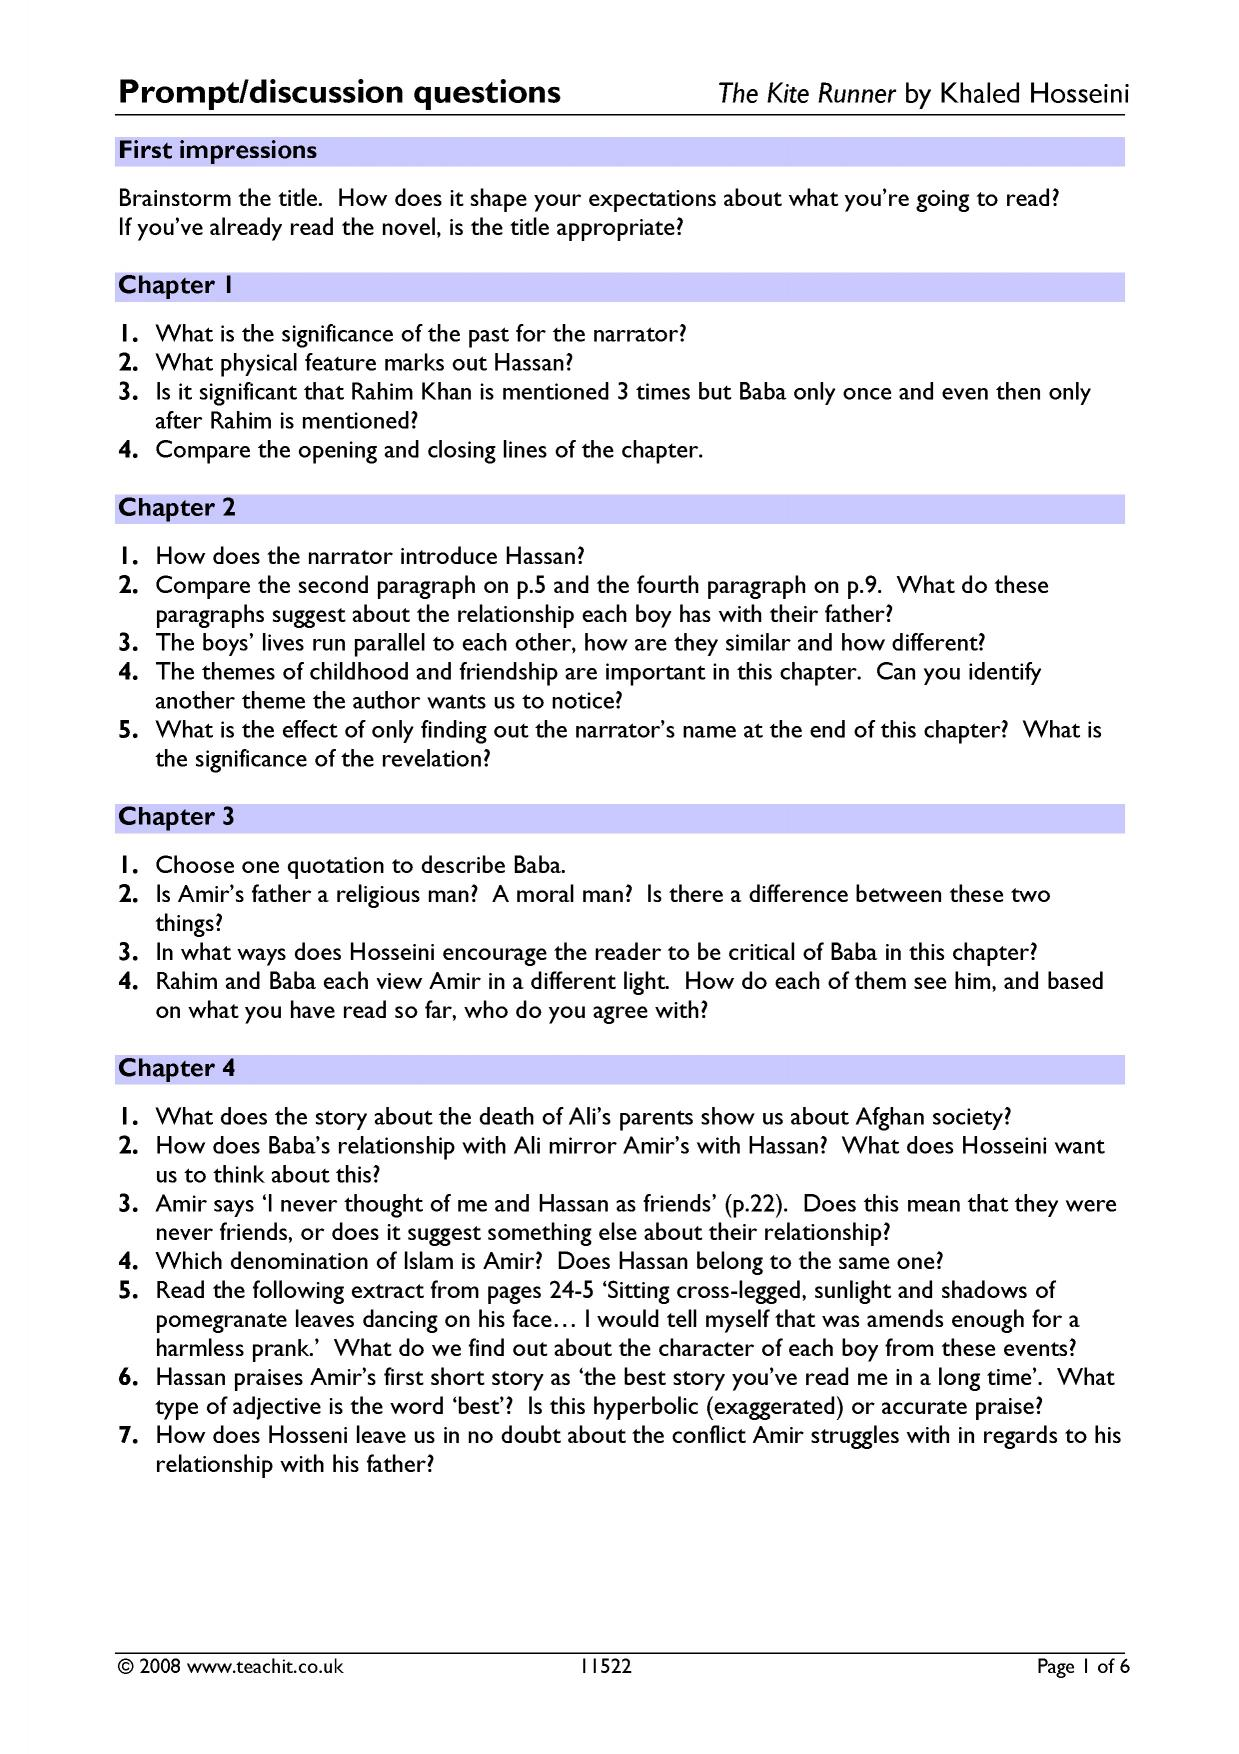 the kite runner by khaled hosseini prose key stage 5 english 0 preview